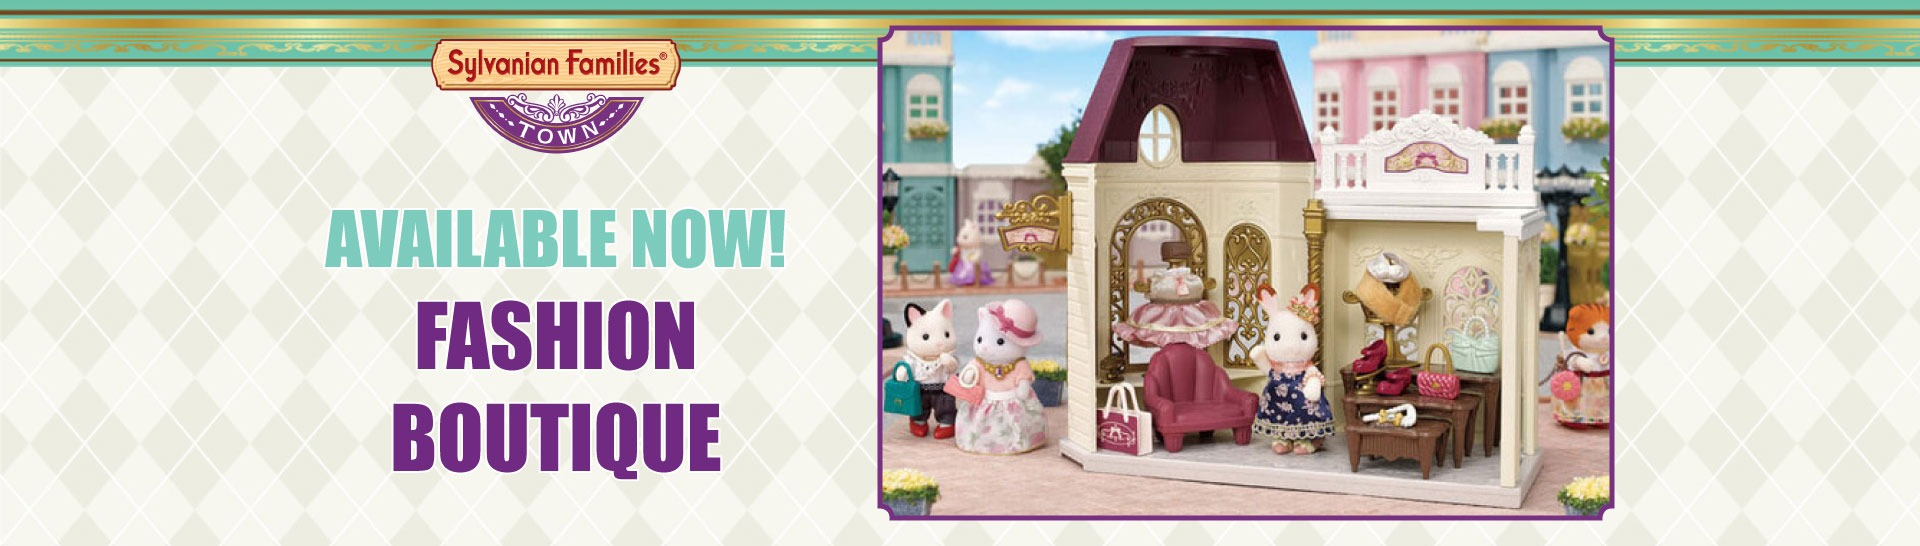 NEW! Fashion Boutique available now!